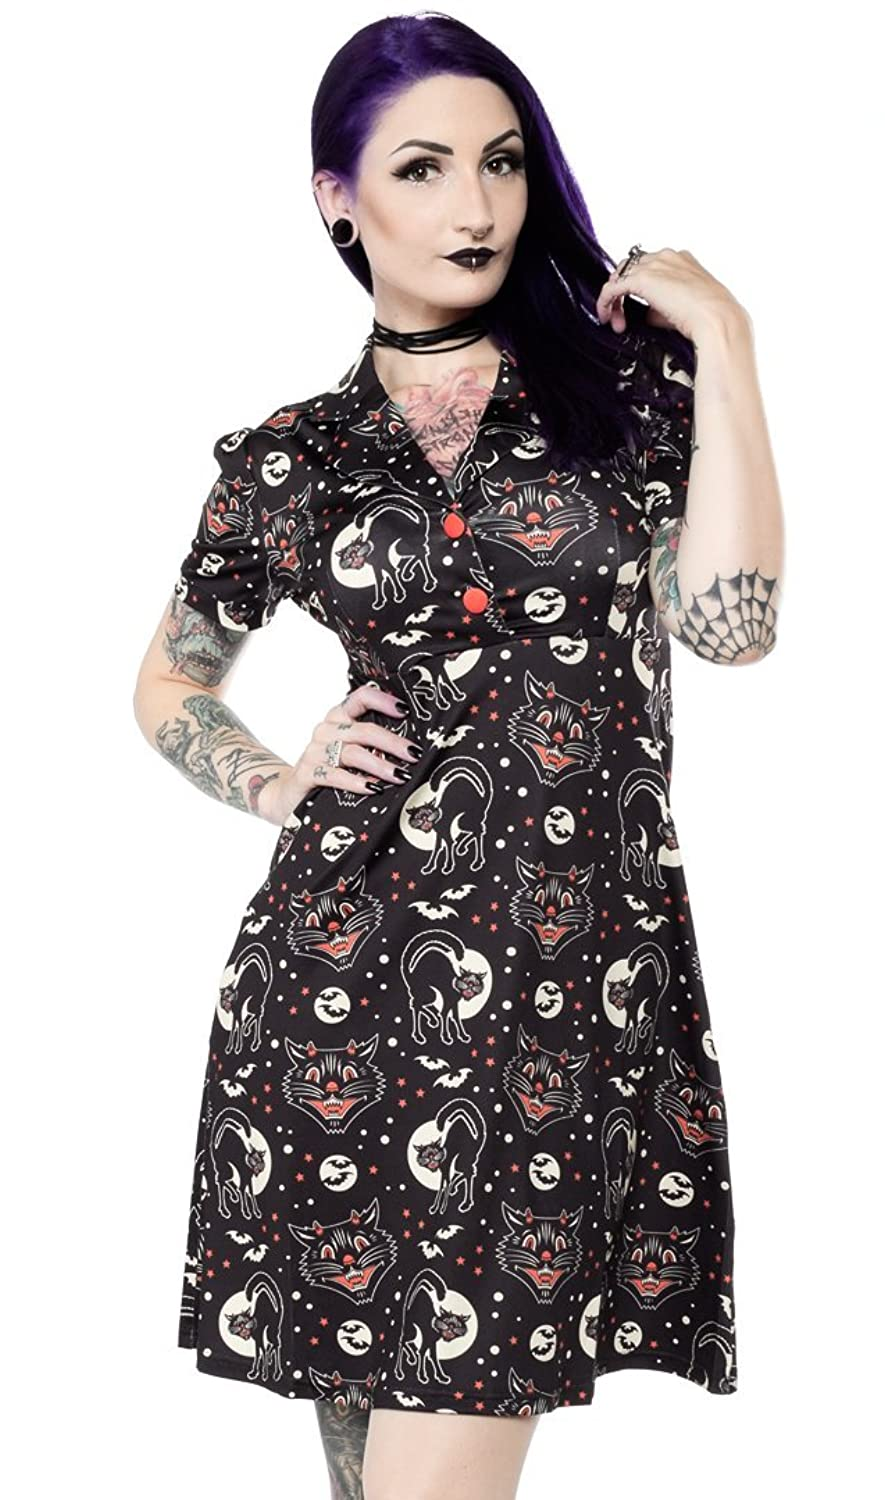 Vintage Retro Halloween Themed Clothing Sourpuss Lucy Fur Rosie Dress $53.99 AT vintagedancer.com